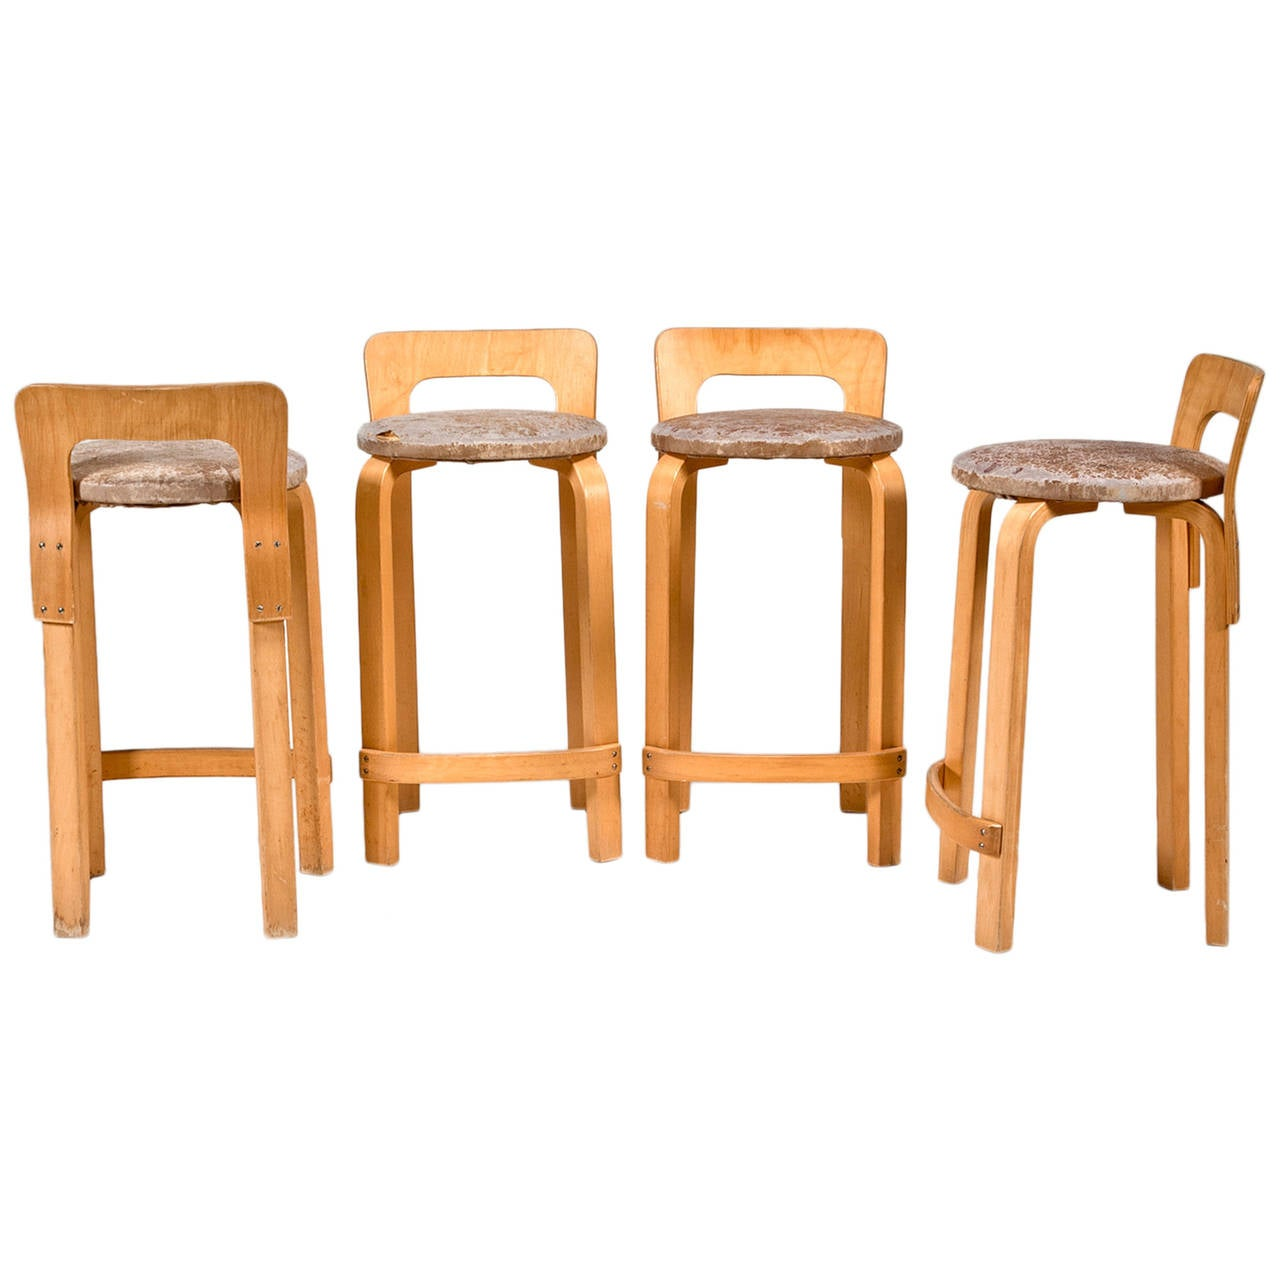 High Chair K65 (set Of 4) By Alvar Aalto From Artek 2nd Cycle For